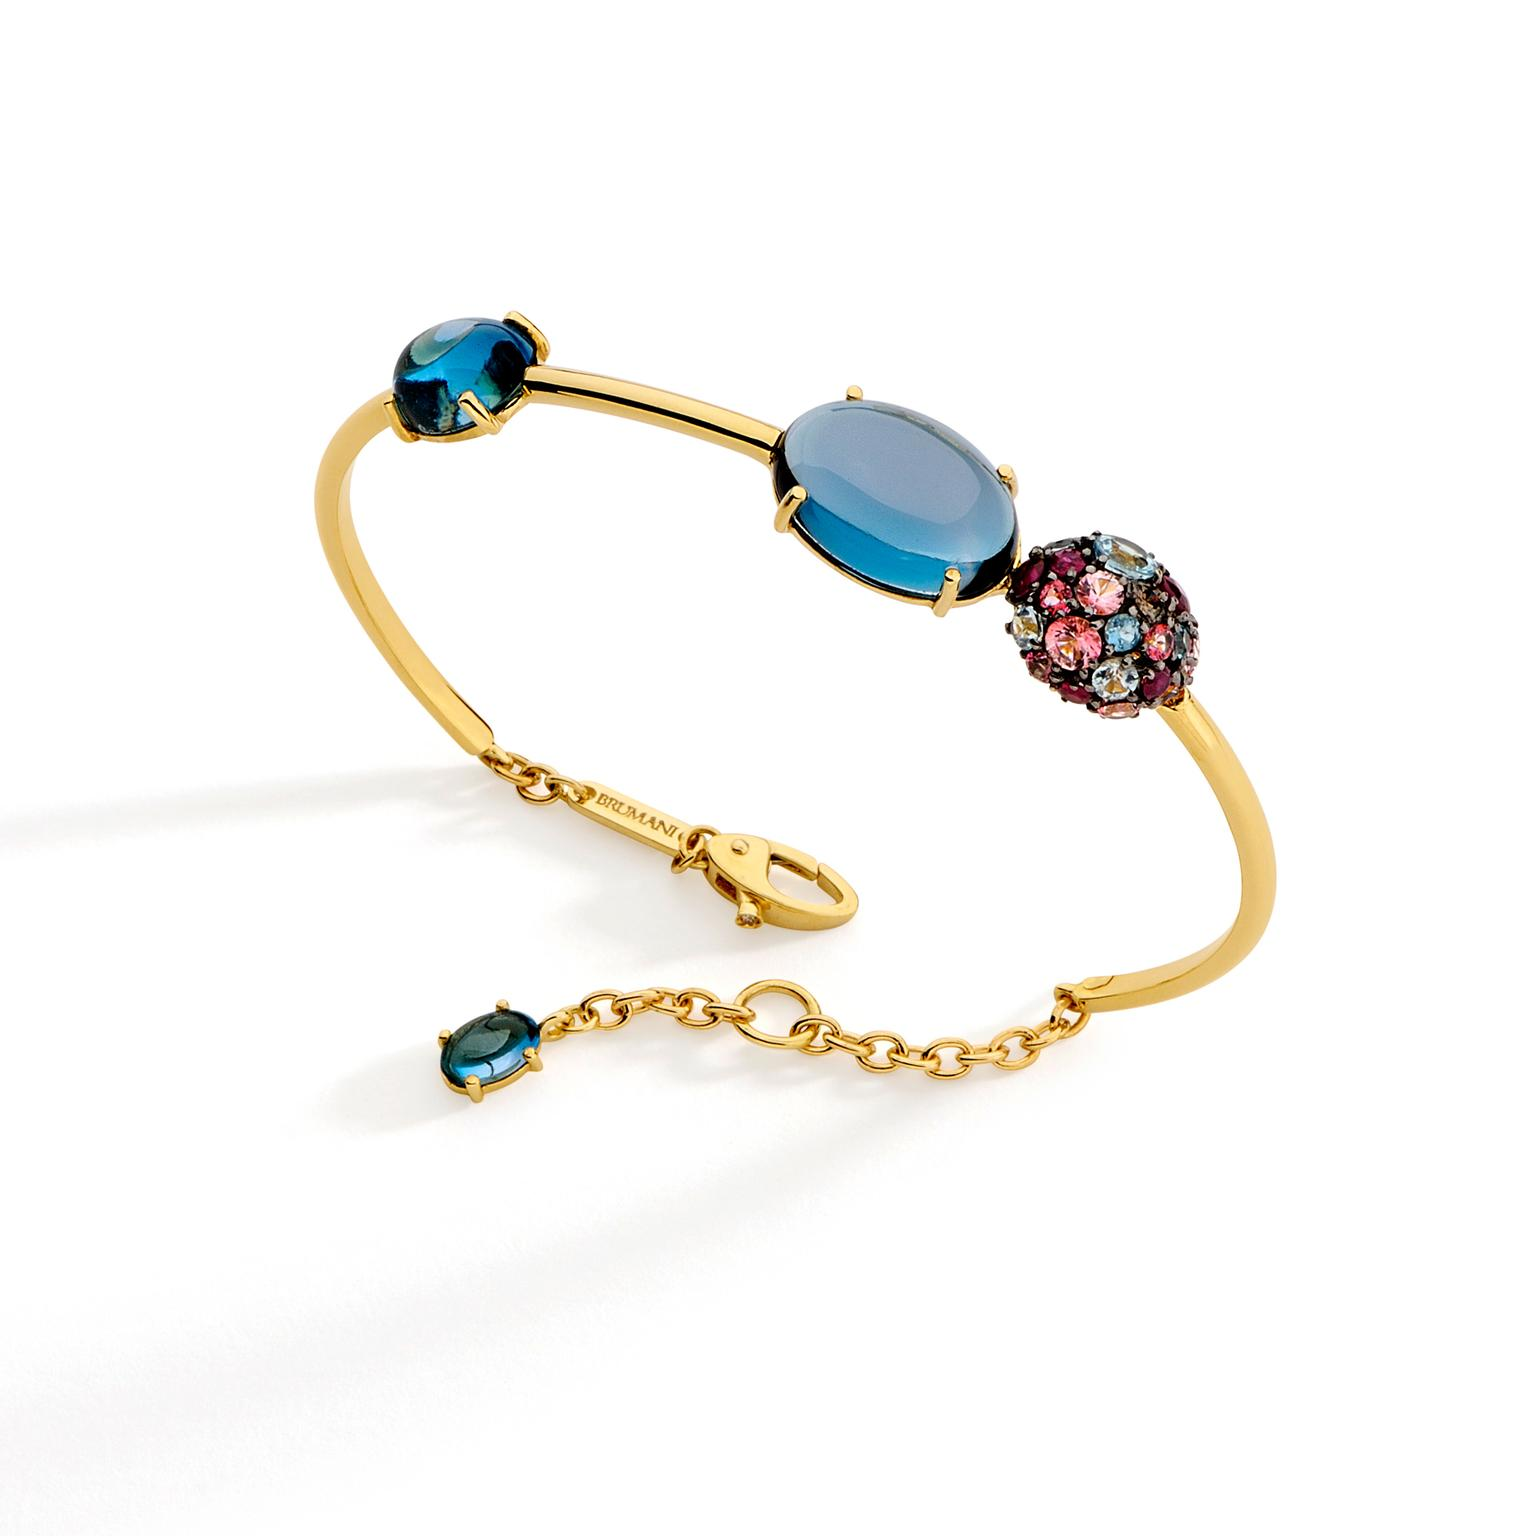 Brumani Baobab topaz, ruby and diamond bracelet